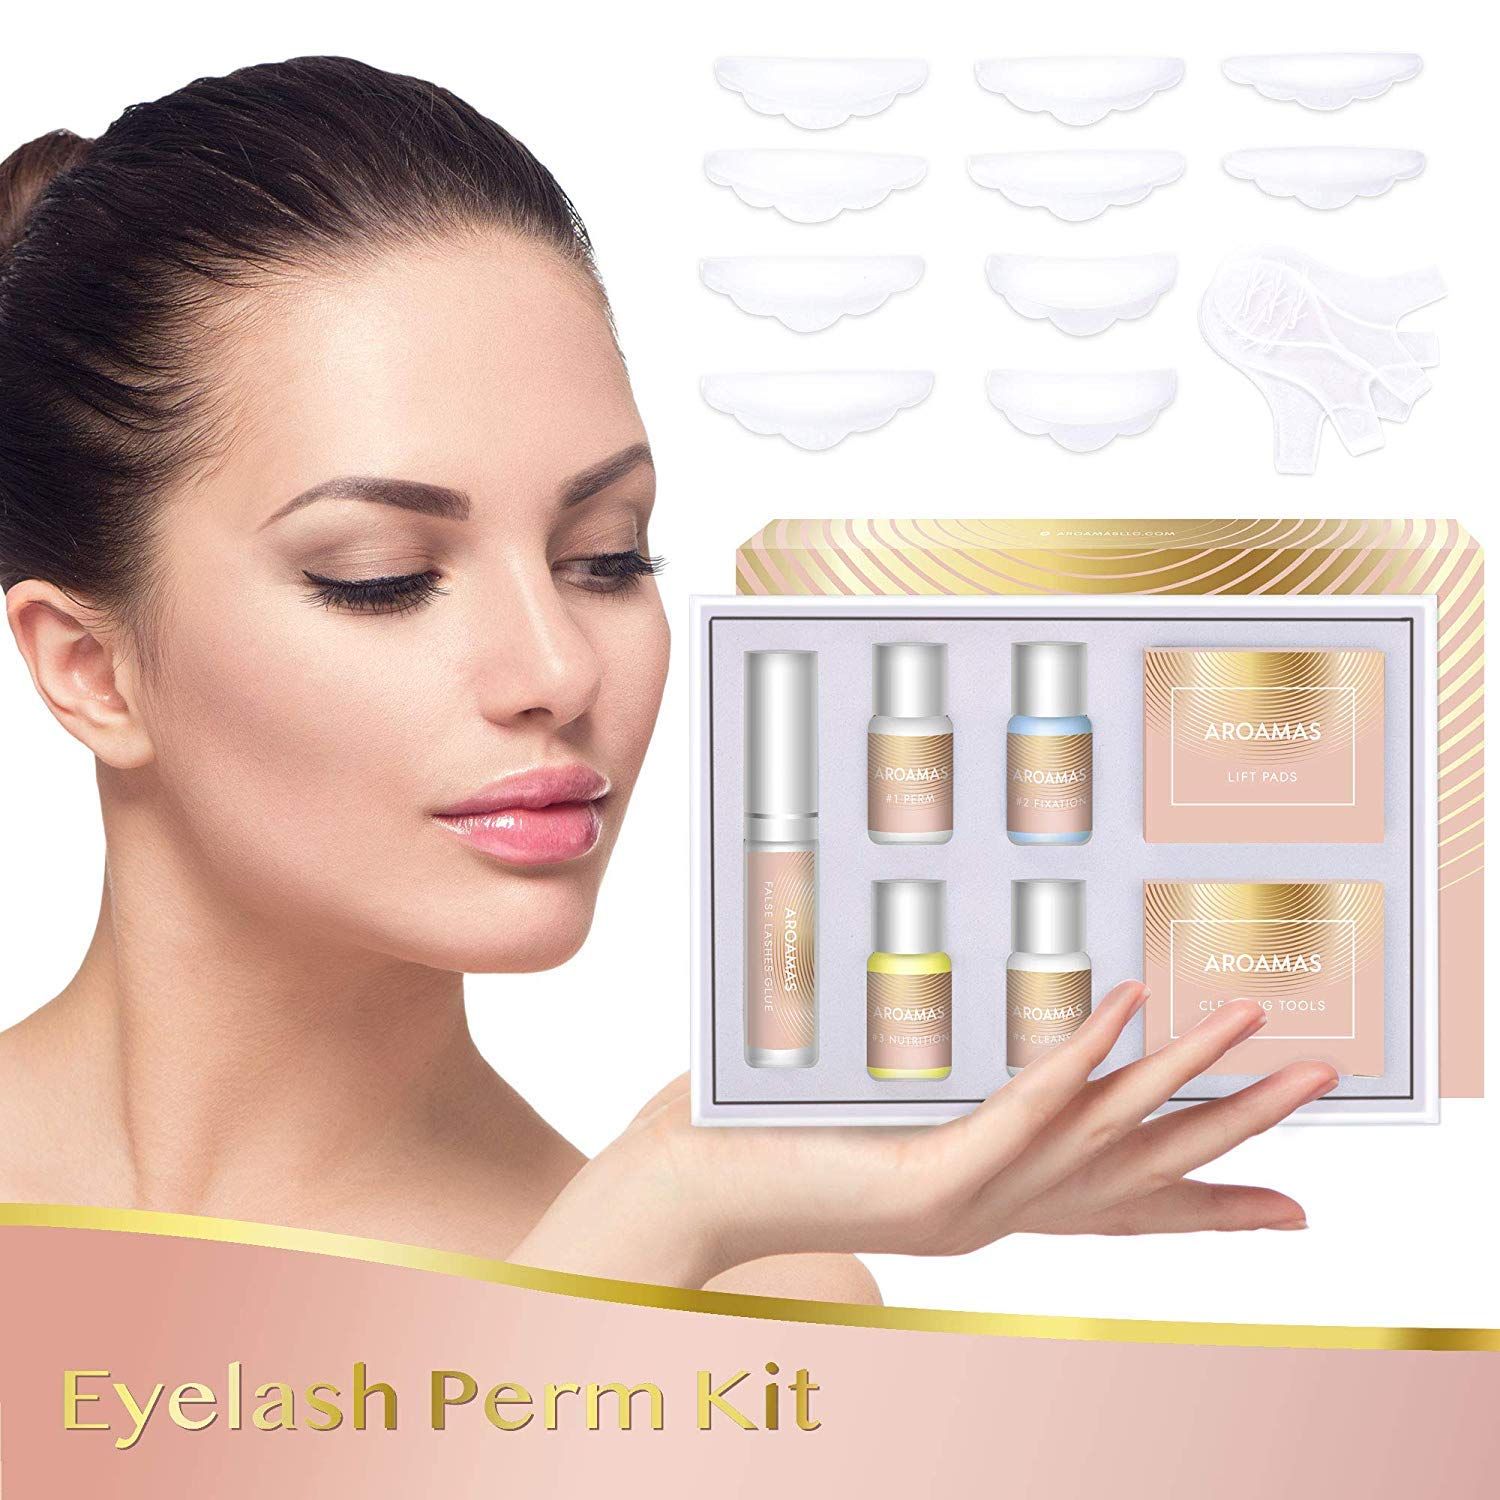 Aroamas Eyelash Perm Kit Full Eyelash Lift Kit - Professional Quality, Semi-Permanent Curling Perming Wave, Lotion & Liquid Set